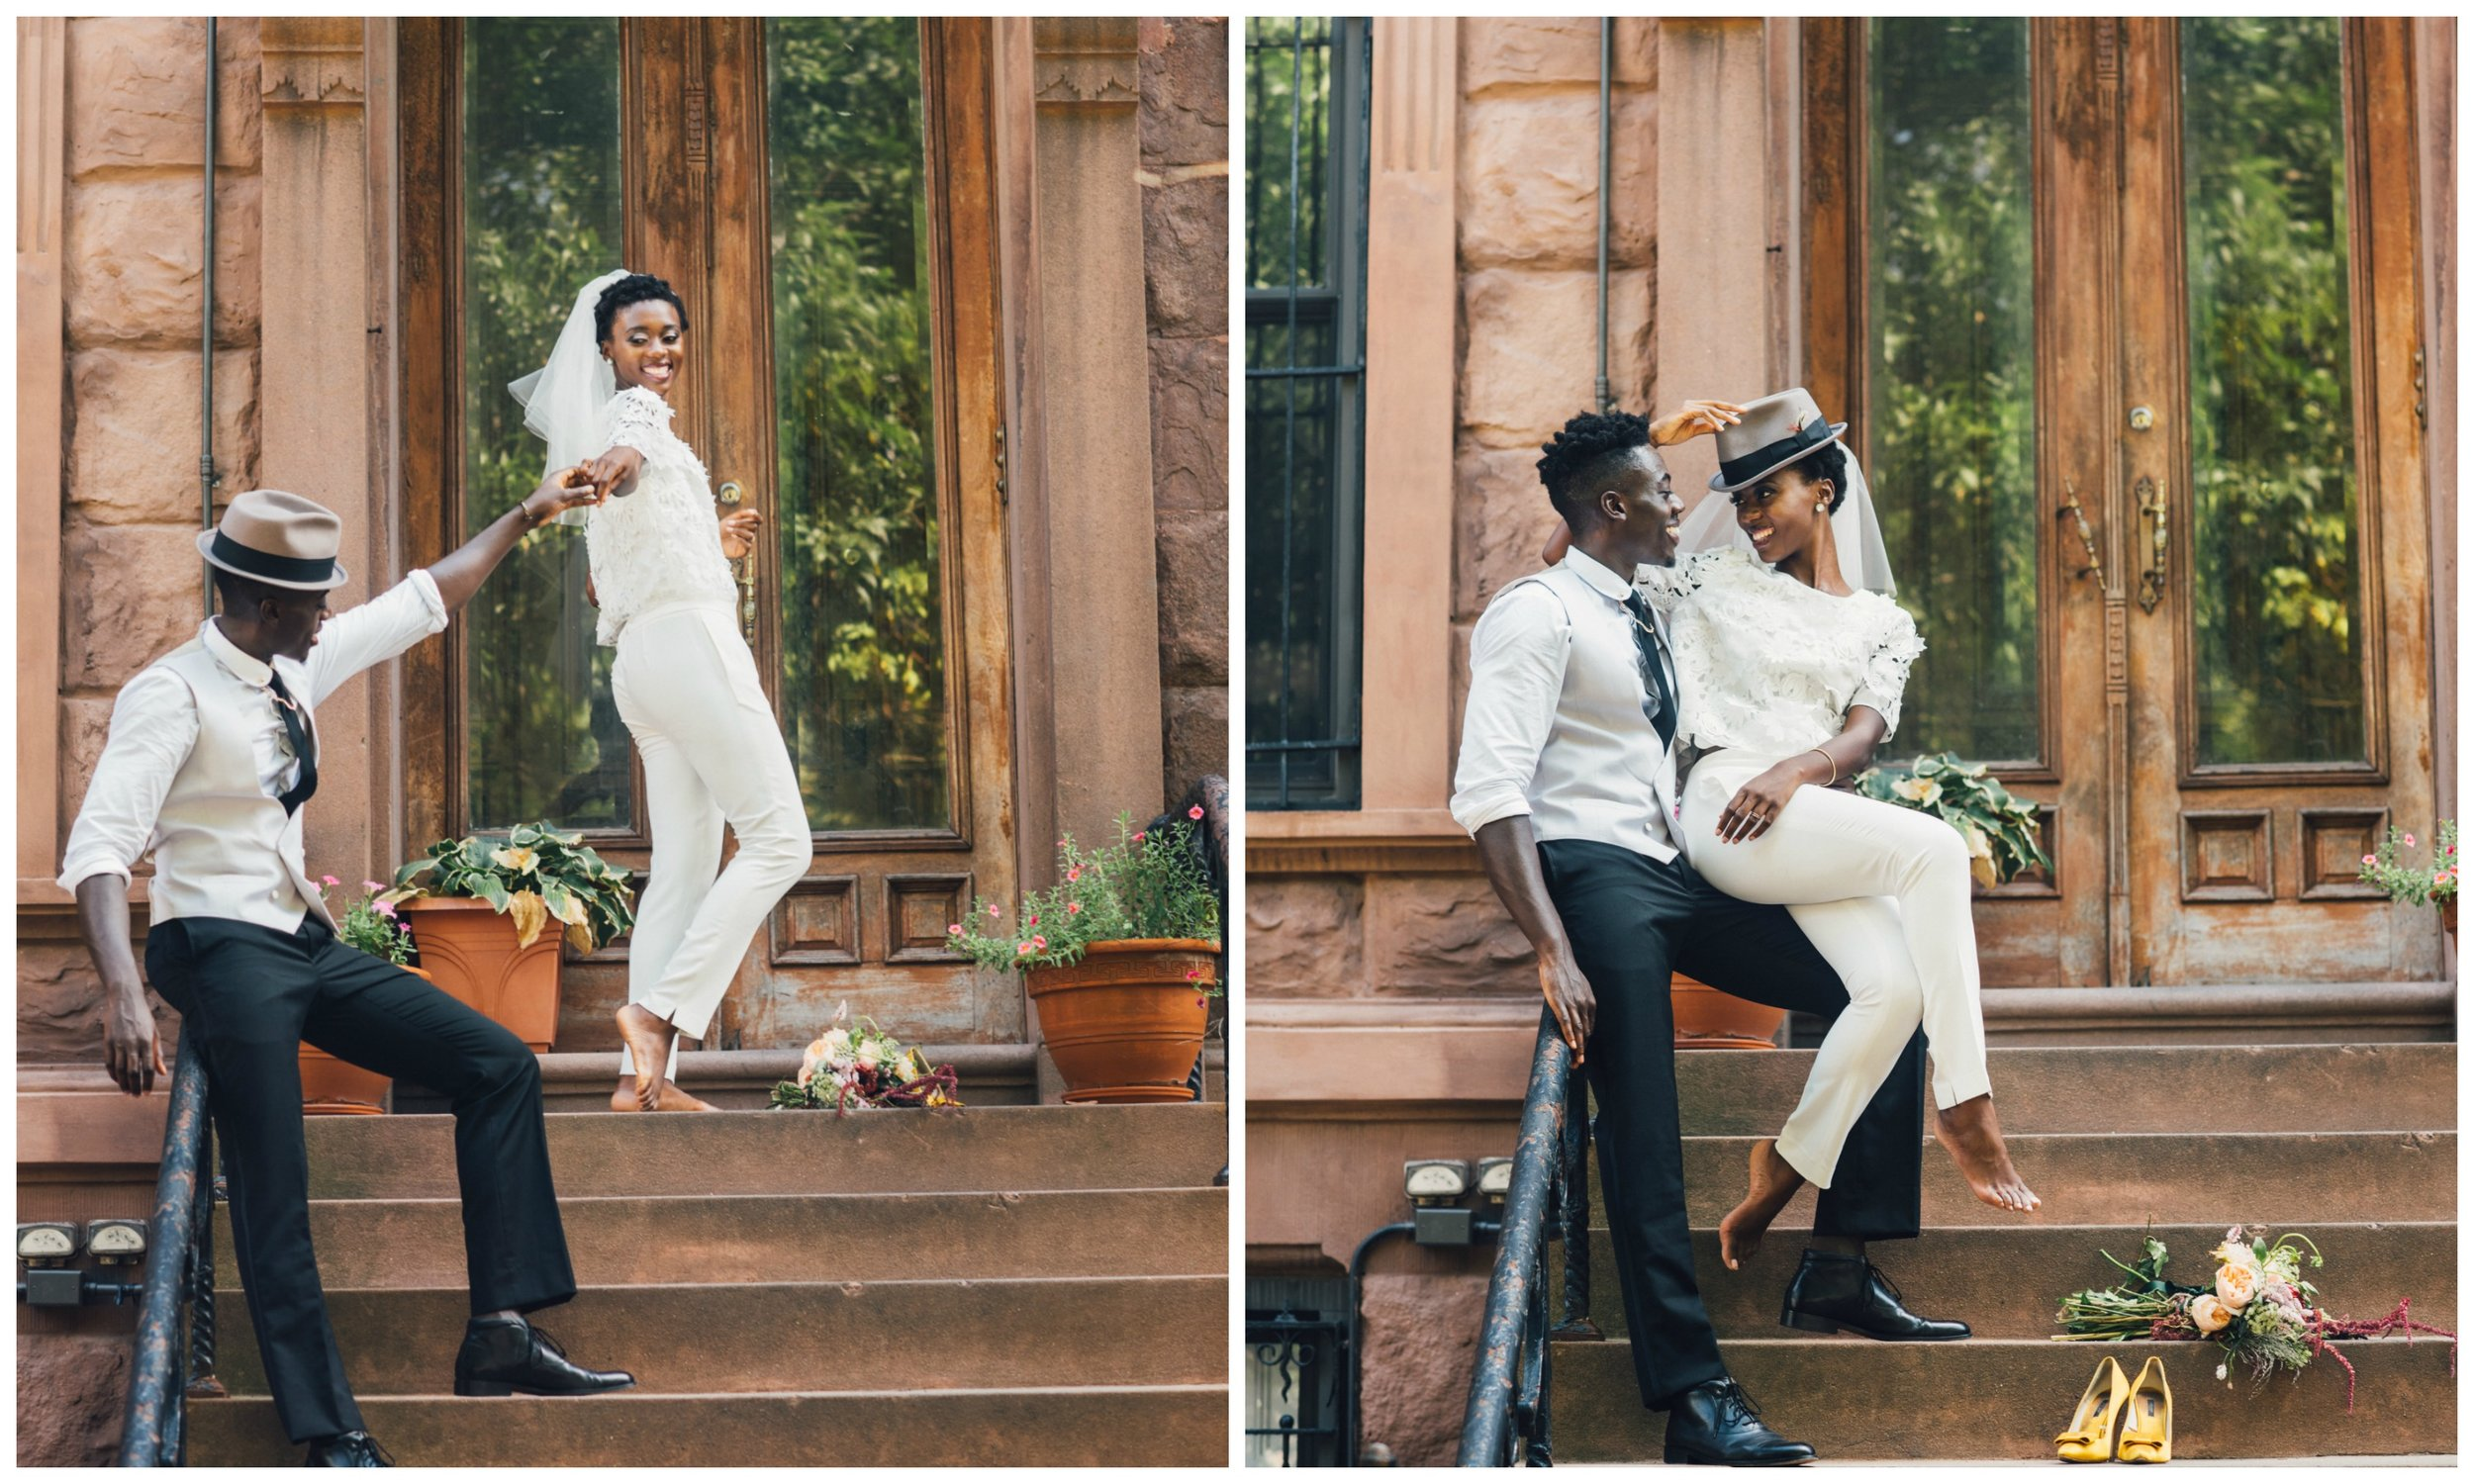 stitch - BROOKLYN BRIDE - INTIMATE WEDDING PHOTOGRAPHER - TWOTWENTY by CHI-CHI AGBIM 6.jpg